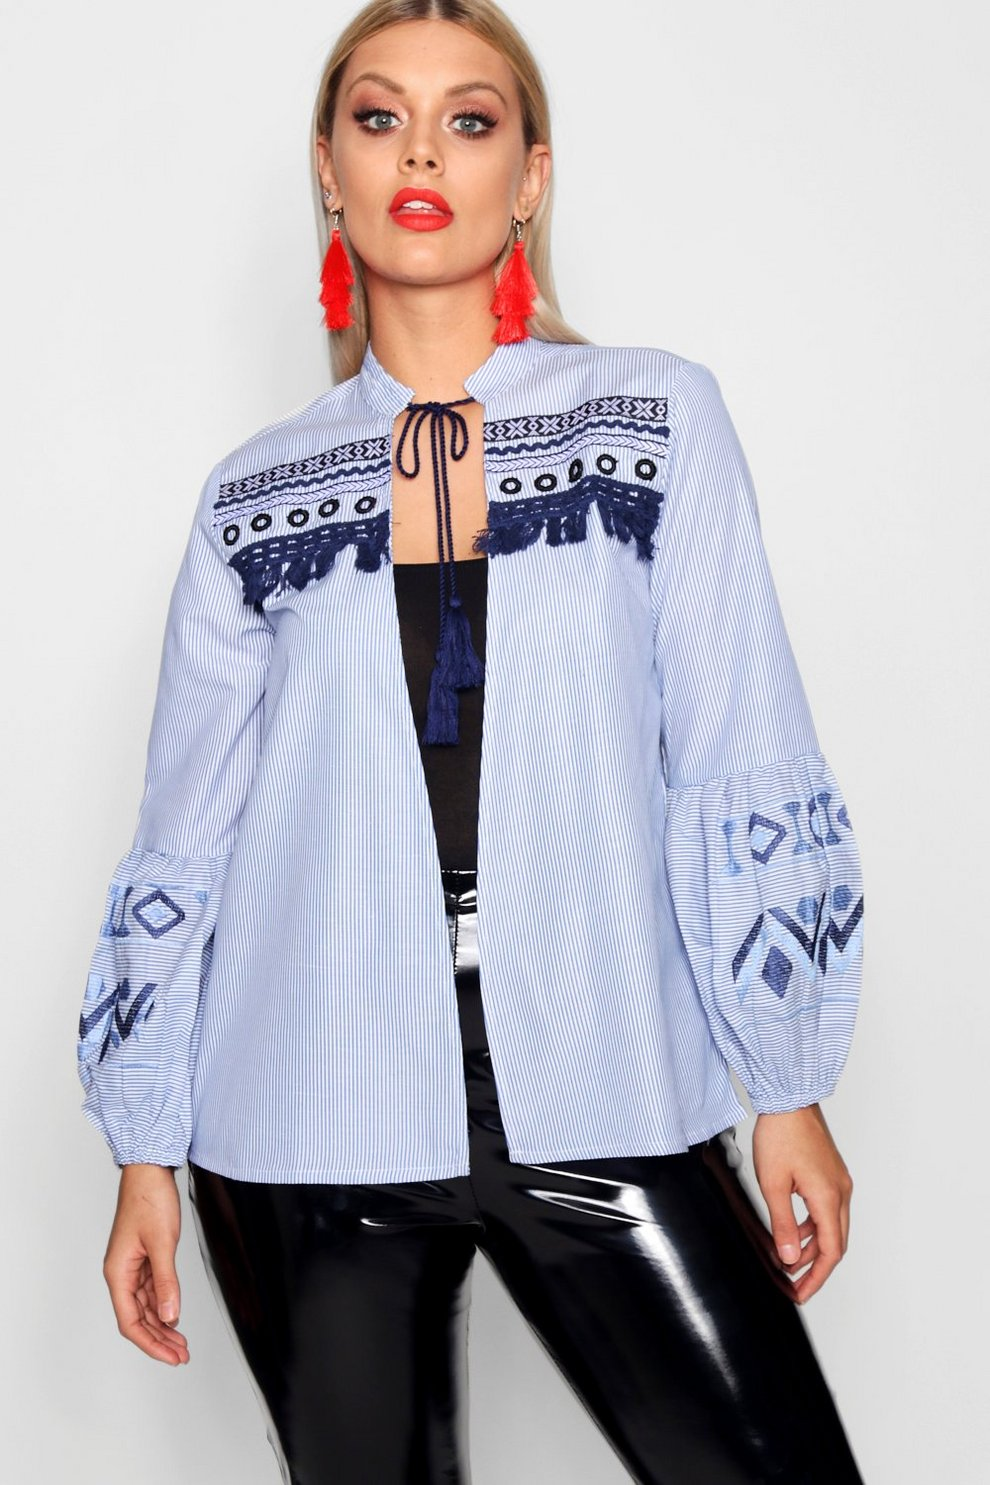 Boohoo Plus Striped Embroidered Jacket Lowest Price Sale Online Discount Comfortable Cheap Online Store Manchester Clearance 2018 New QDkj0